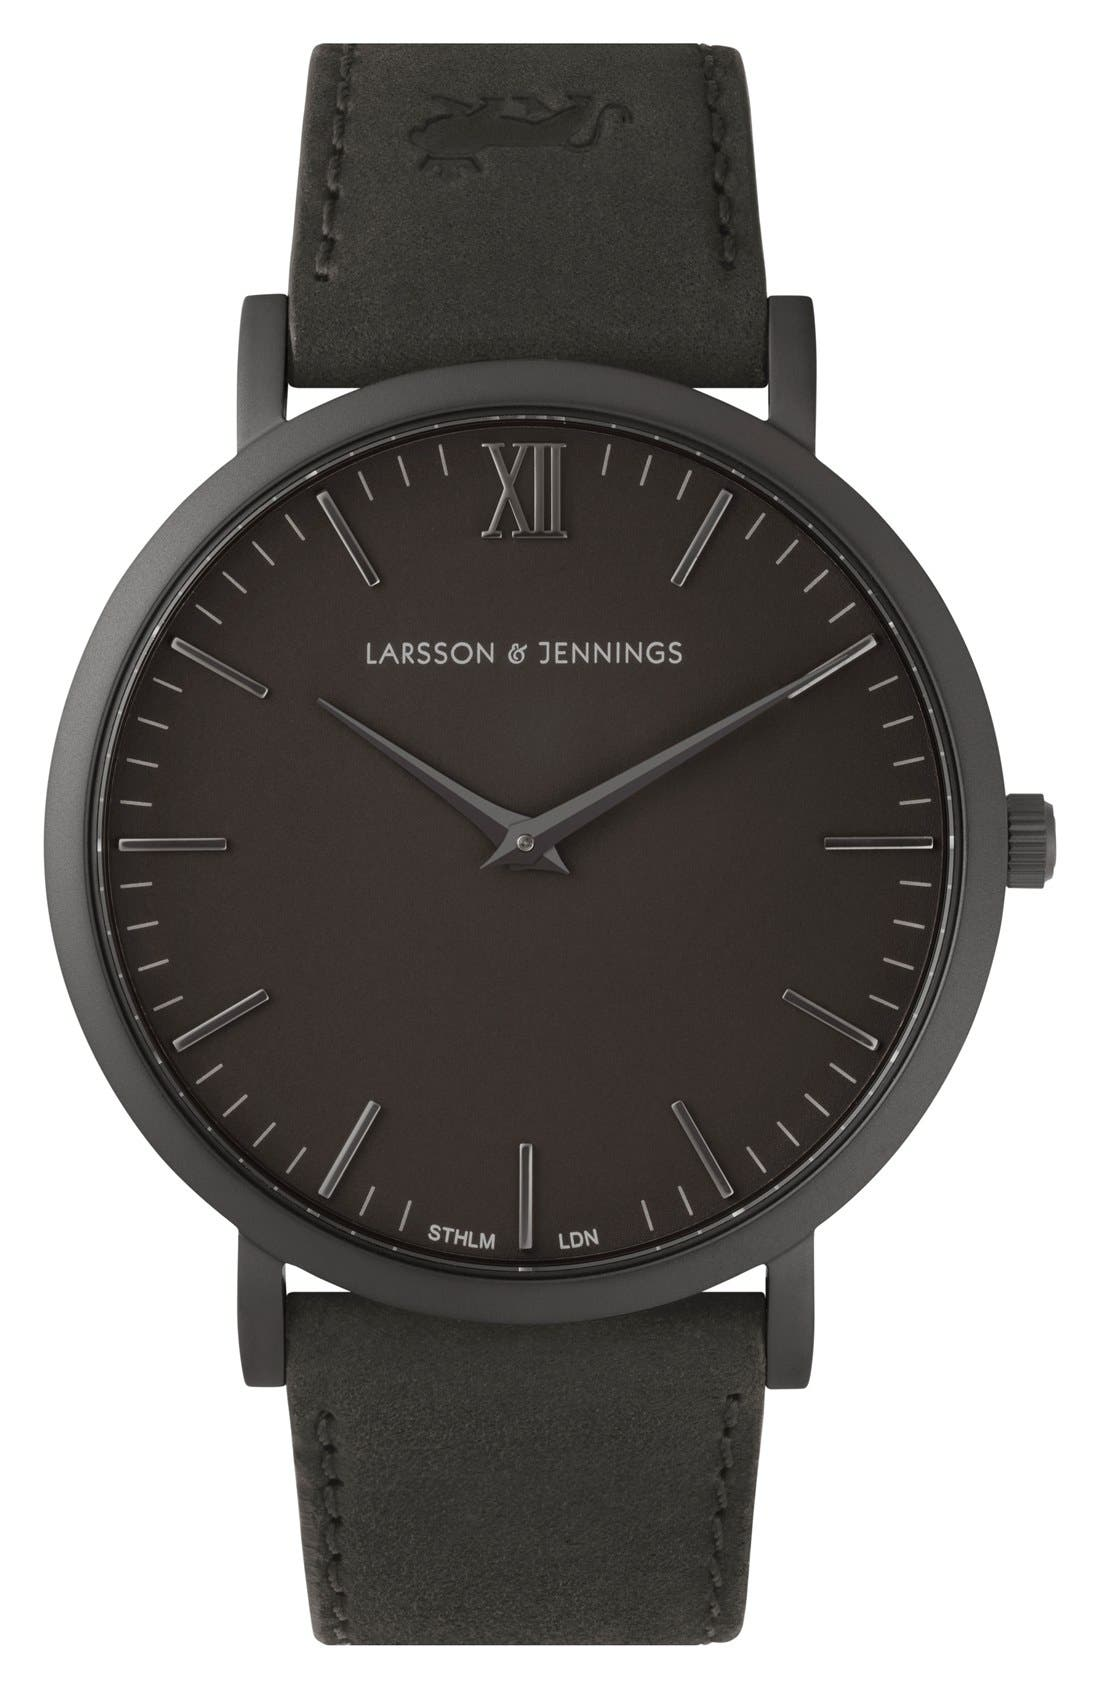 Main Image - Larsson & Jennings 'Lugano' Leather Strap Watch, 40mm